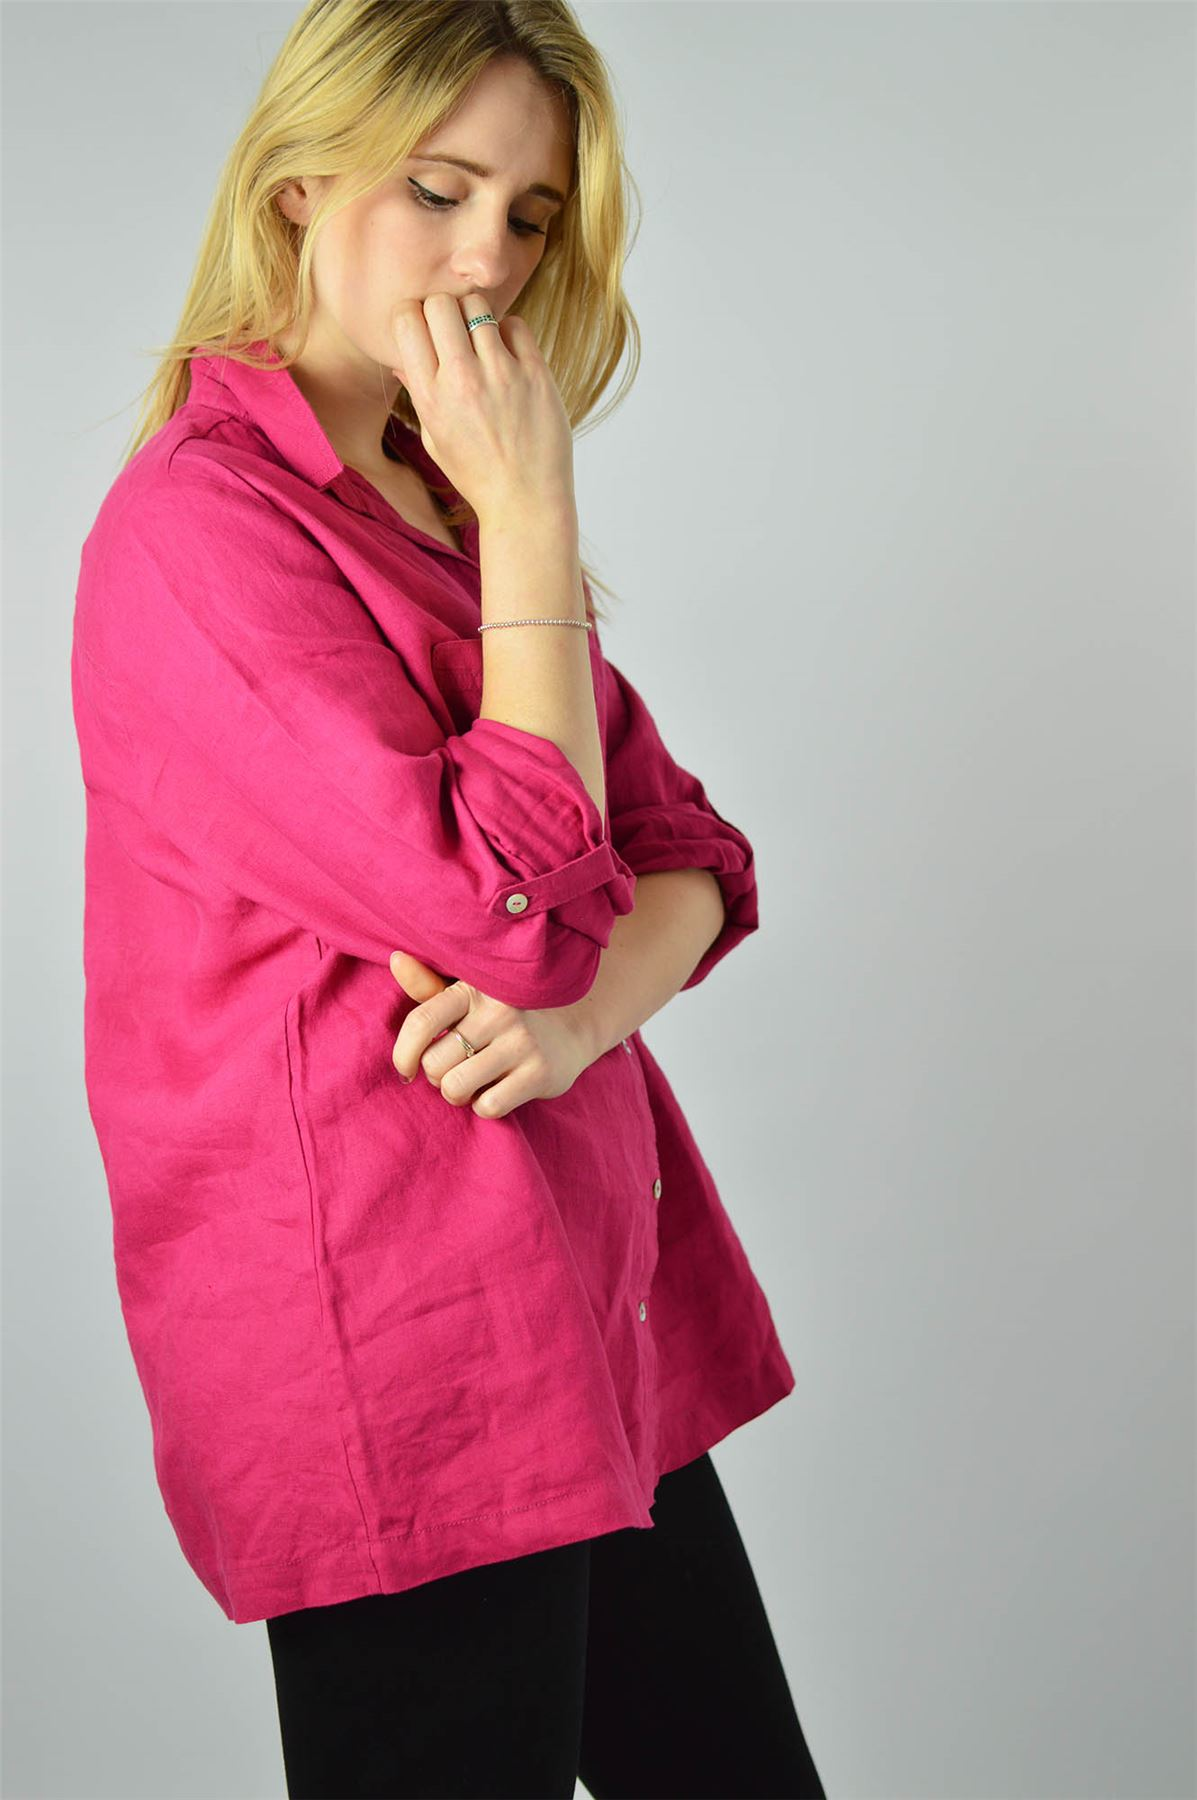 YESSICA-Linen-Blouse-Shirt-in-Pink-or-Ivory-RRP-25 thumbnail 11